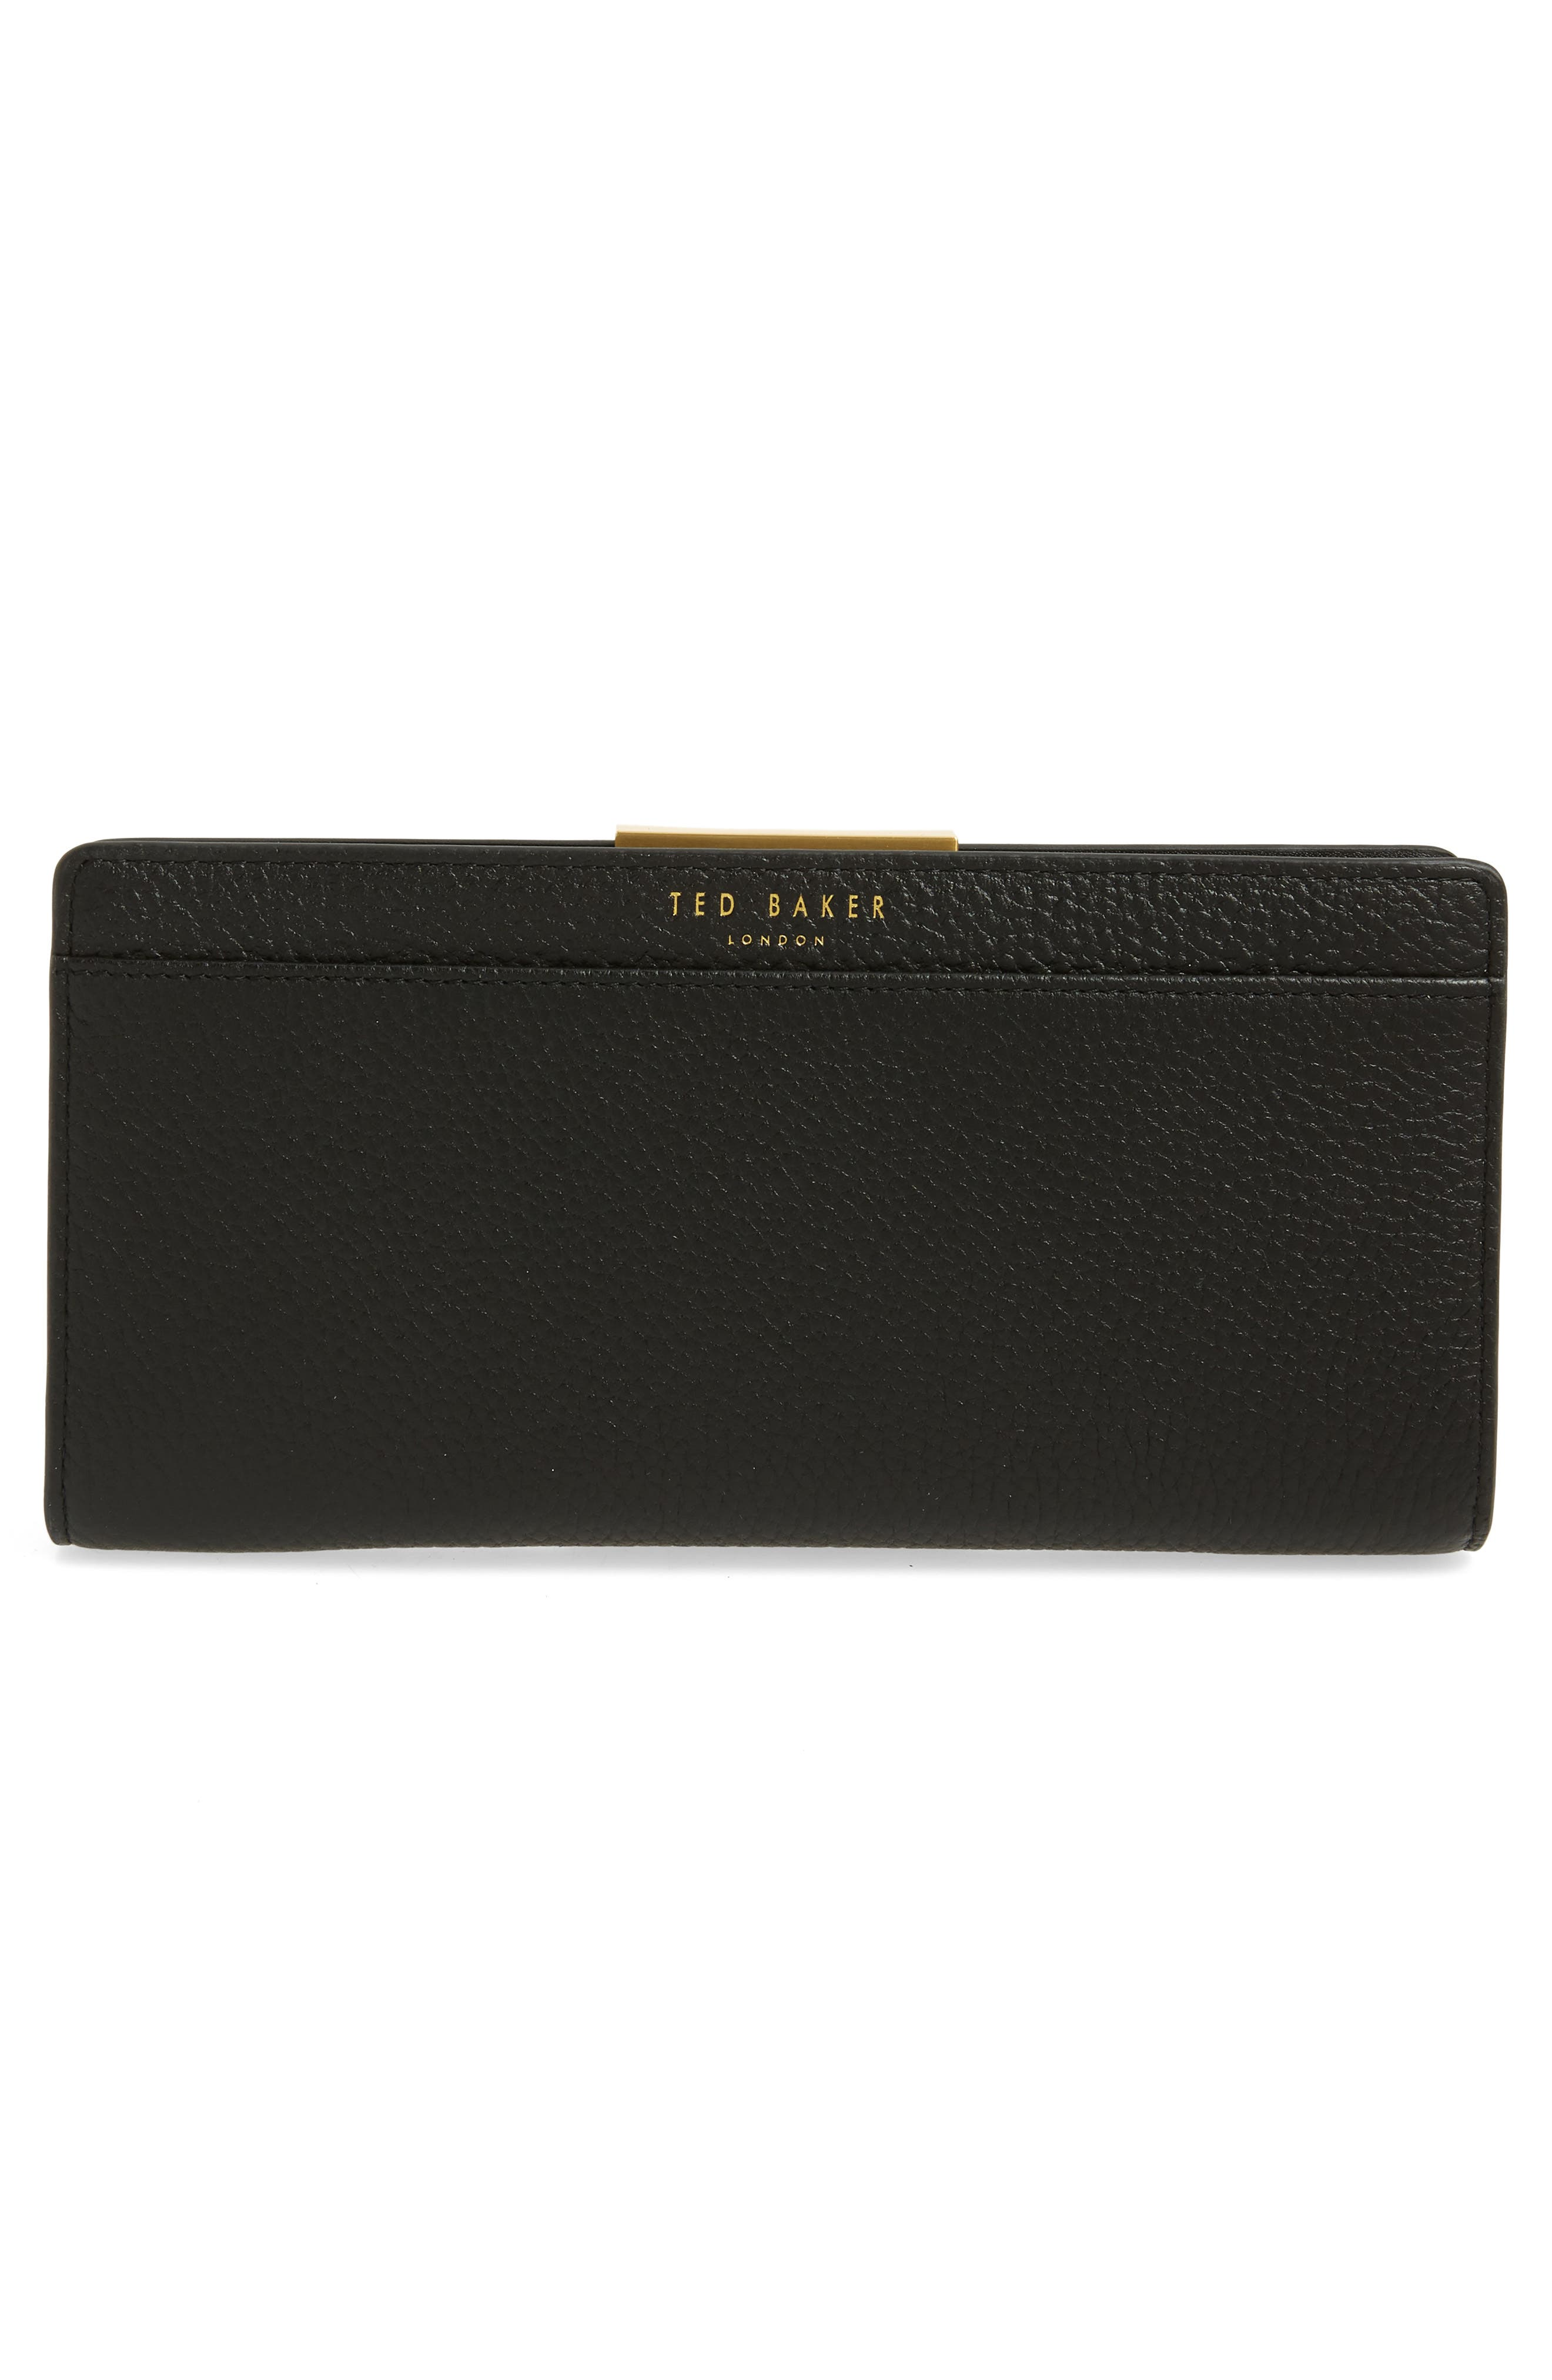 TED BAKER LONDON, Emblyn Leather Matinée Wallet, Alternate thumbnail 3, color, 001